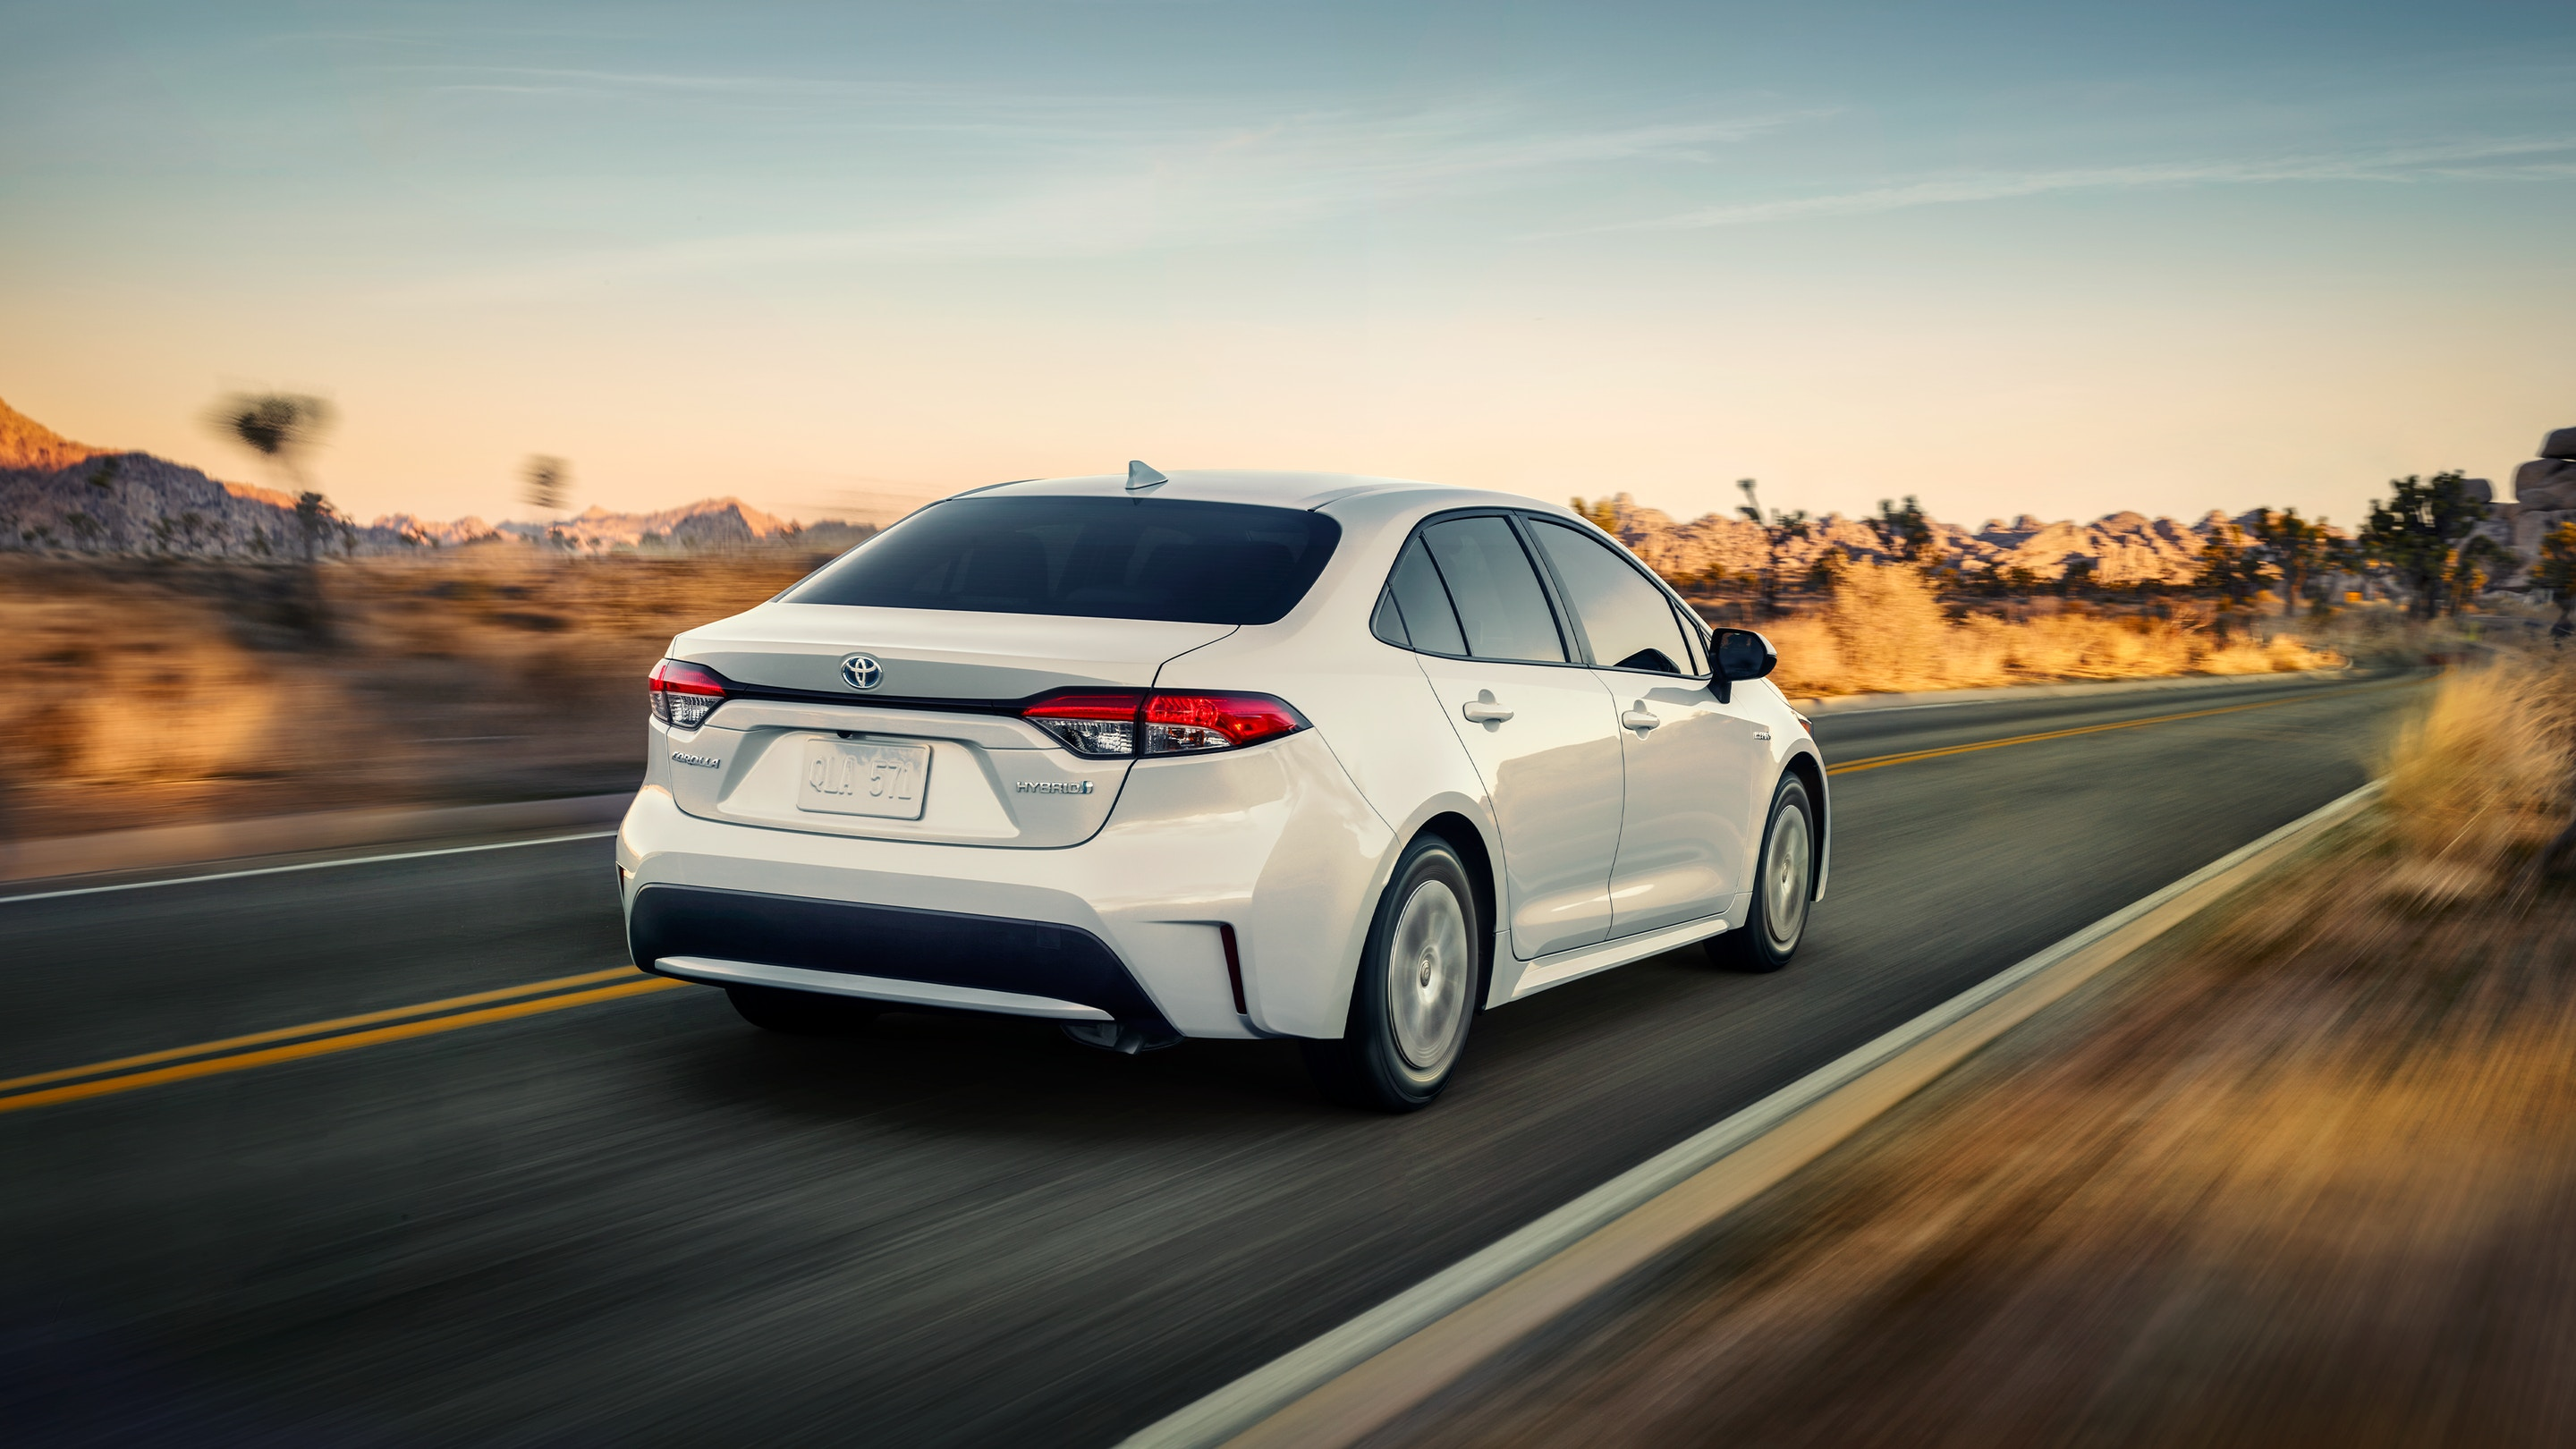 2020 Toyota Corolla Hybrid for Sale near Kennett Square, PA